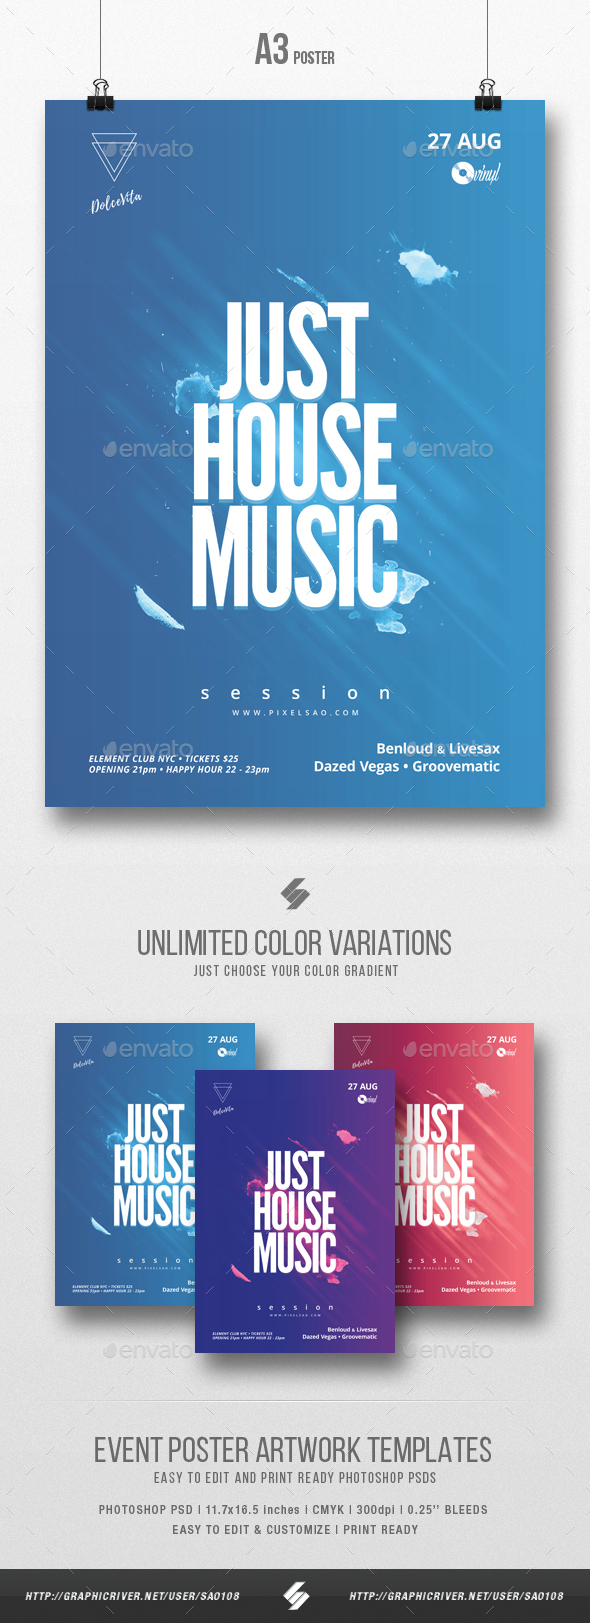 Just House Music vol.2 - Minimal Flyer / Poster Template A3 - Clubs & Parties Events